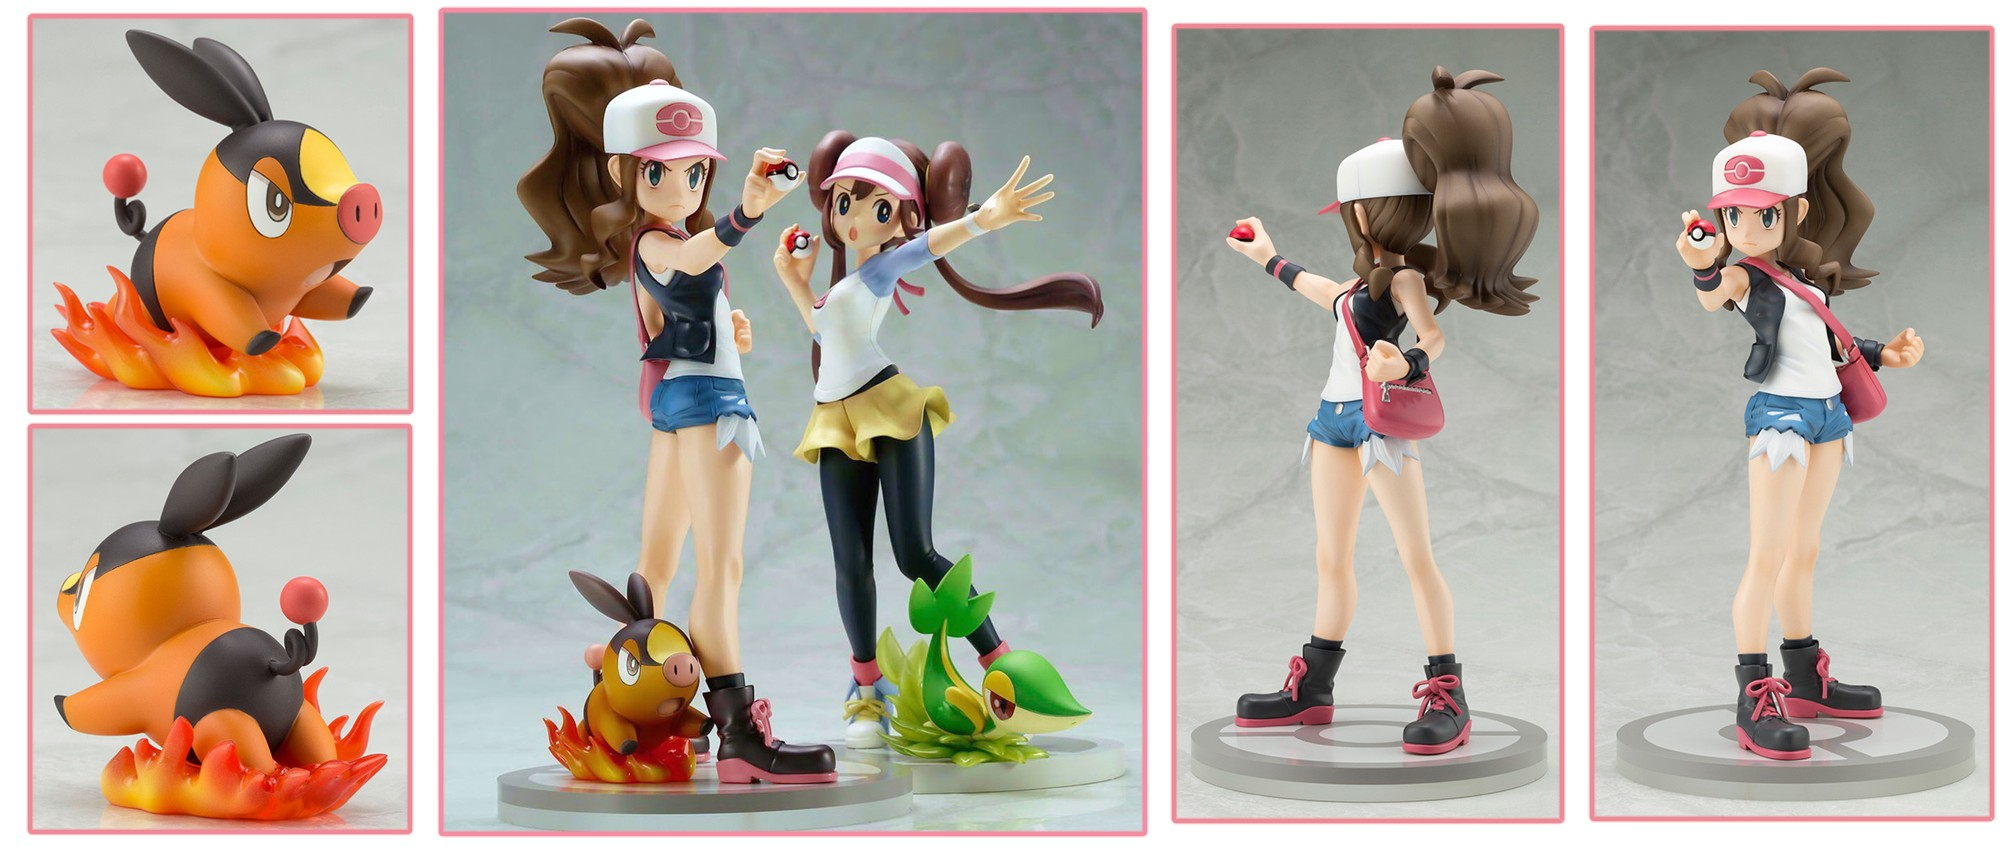 Kotobukiya – ARTFX J: Pokemon Figure Series 1/8-scale Hilda Figure (March 2018)